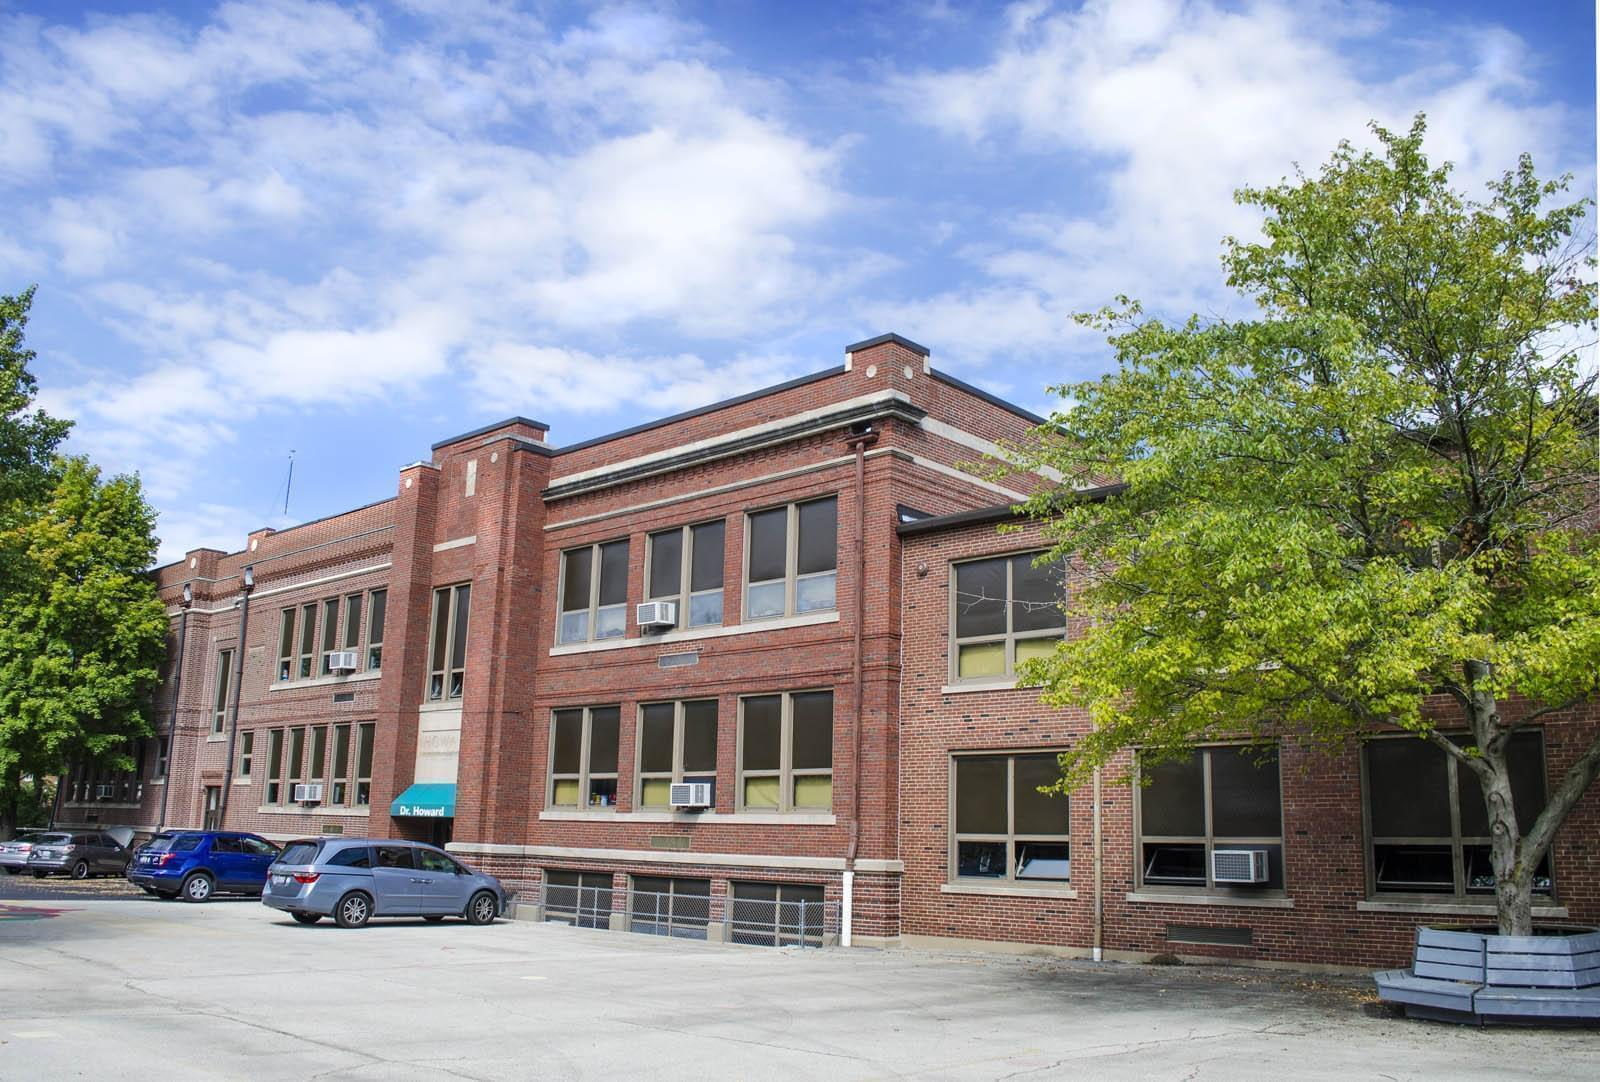 Dr. Howard Elementary School in Champaign.